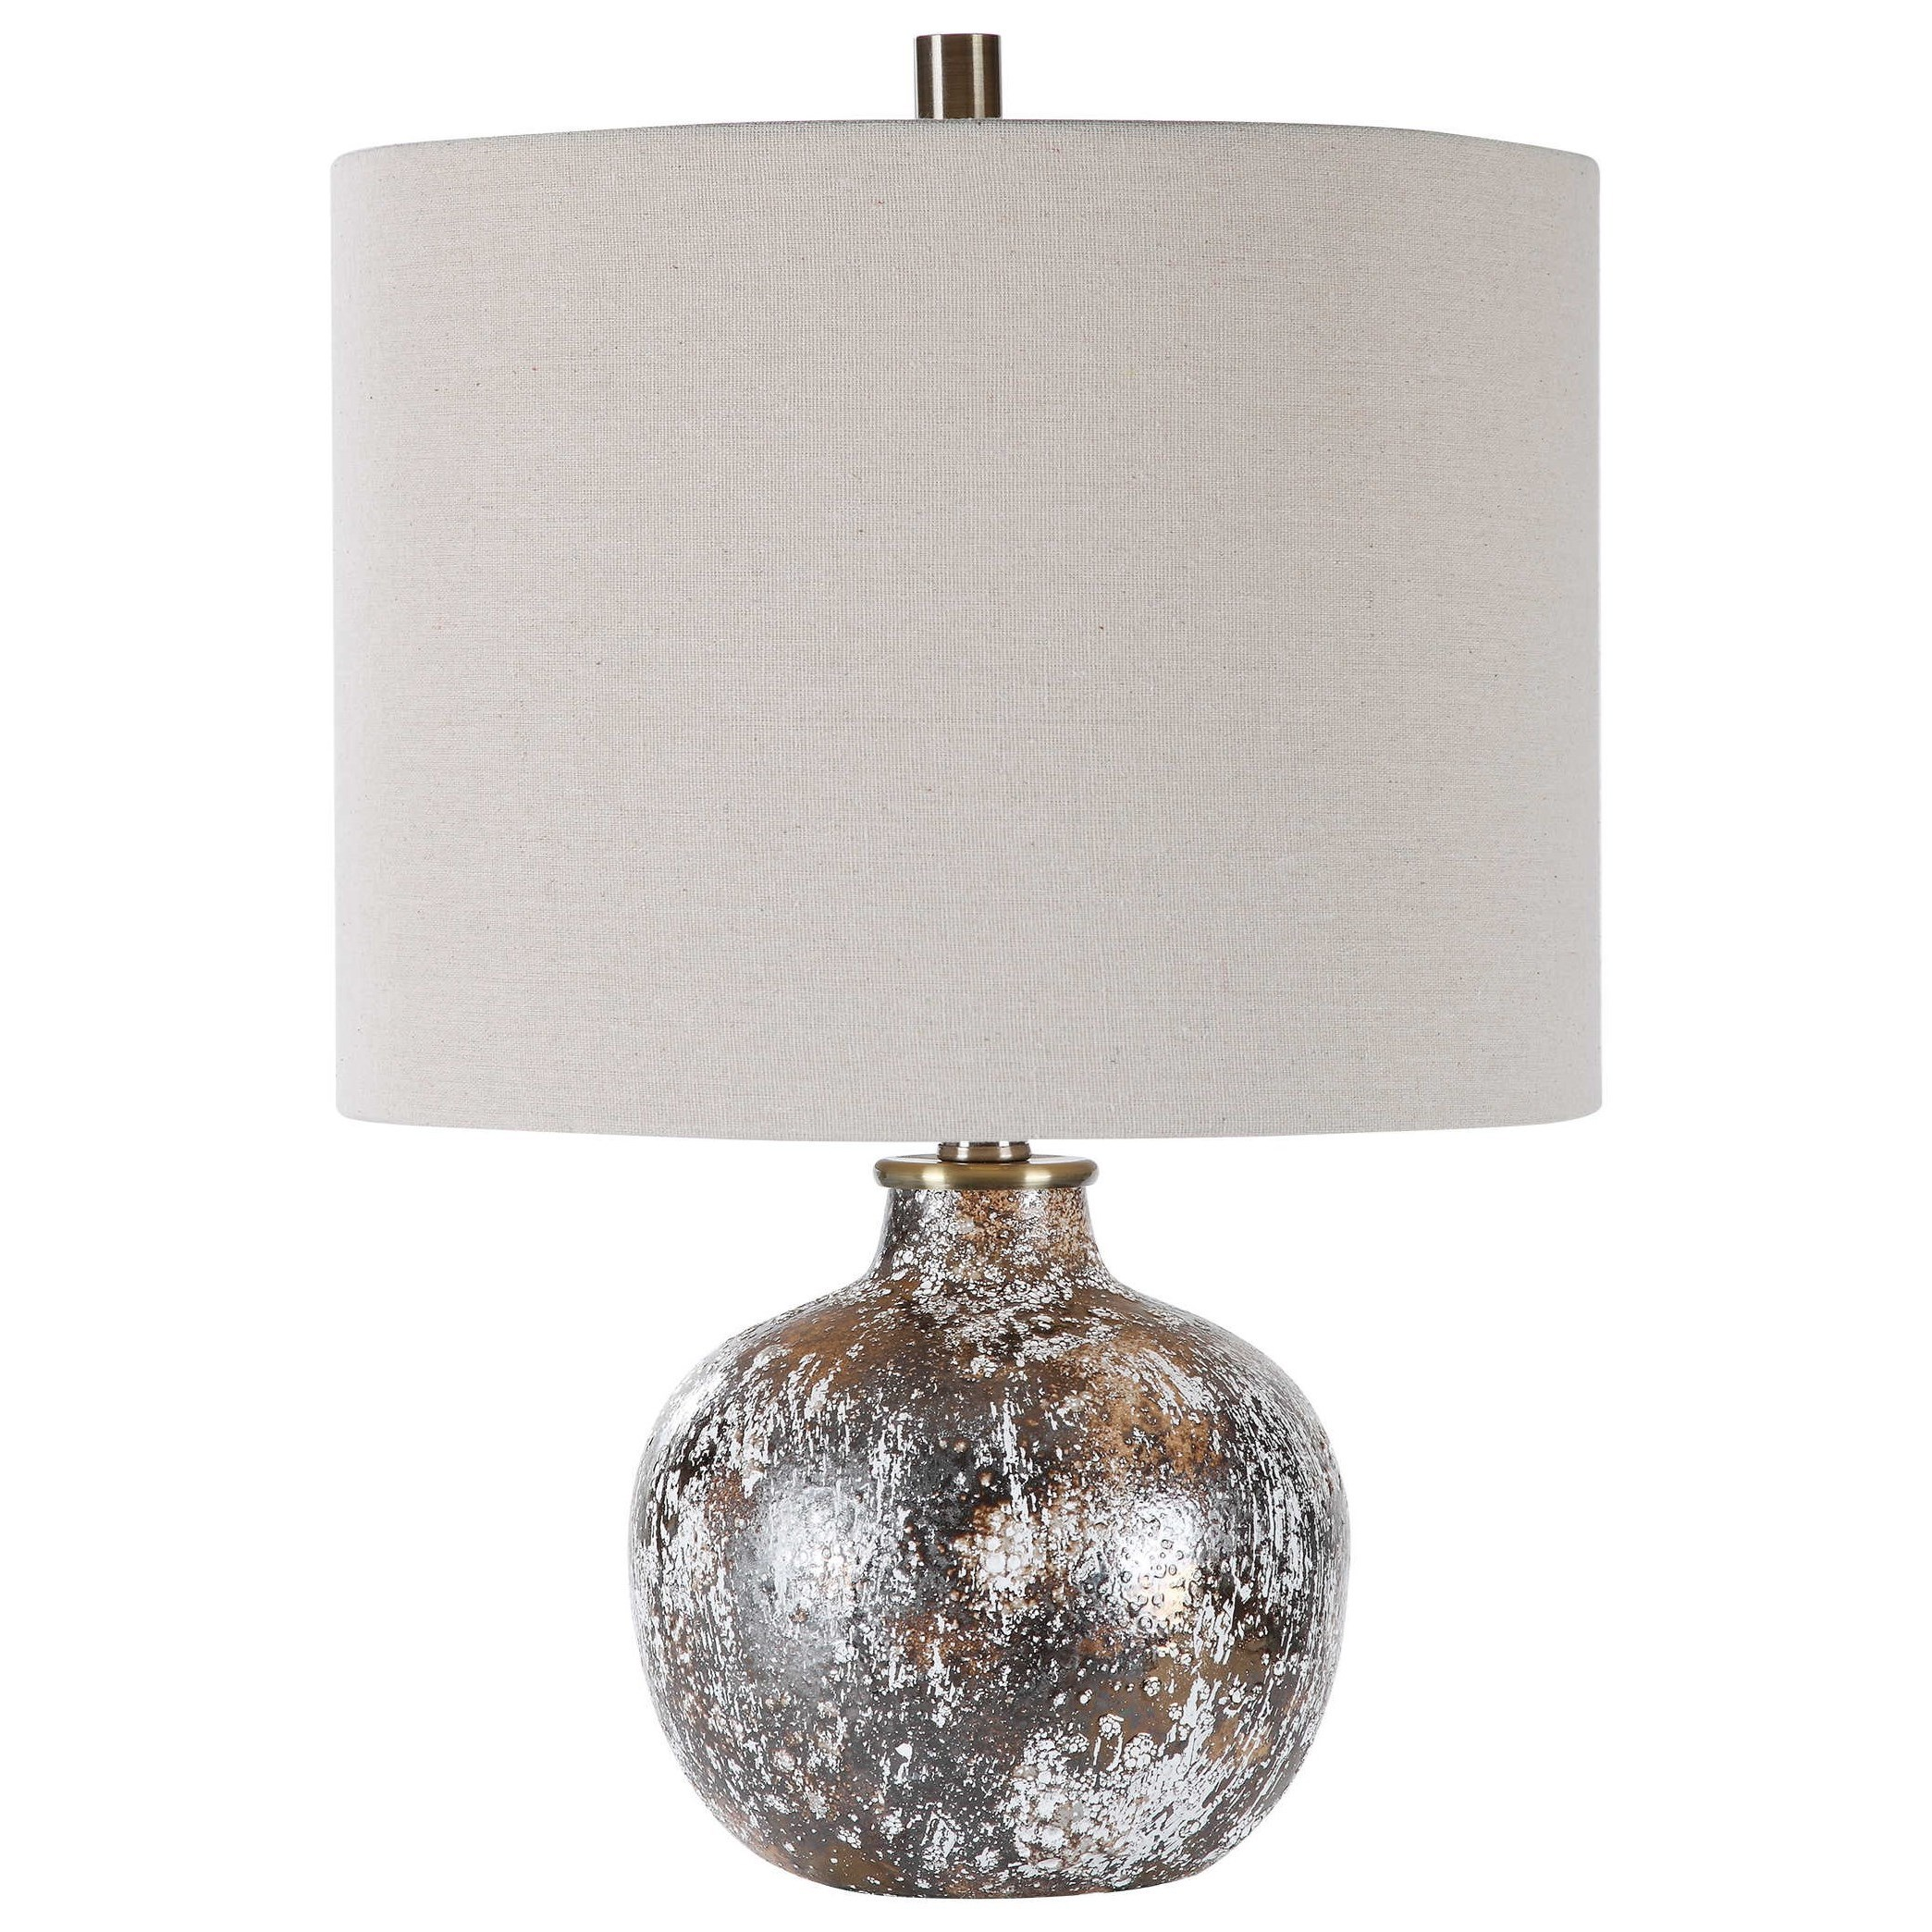 Accent Lamps Luanda Ceramic Accent Lamp by Uttermost at Del Sol Furniture